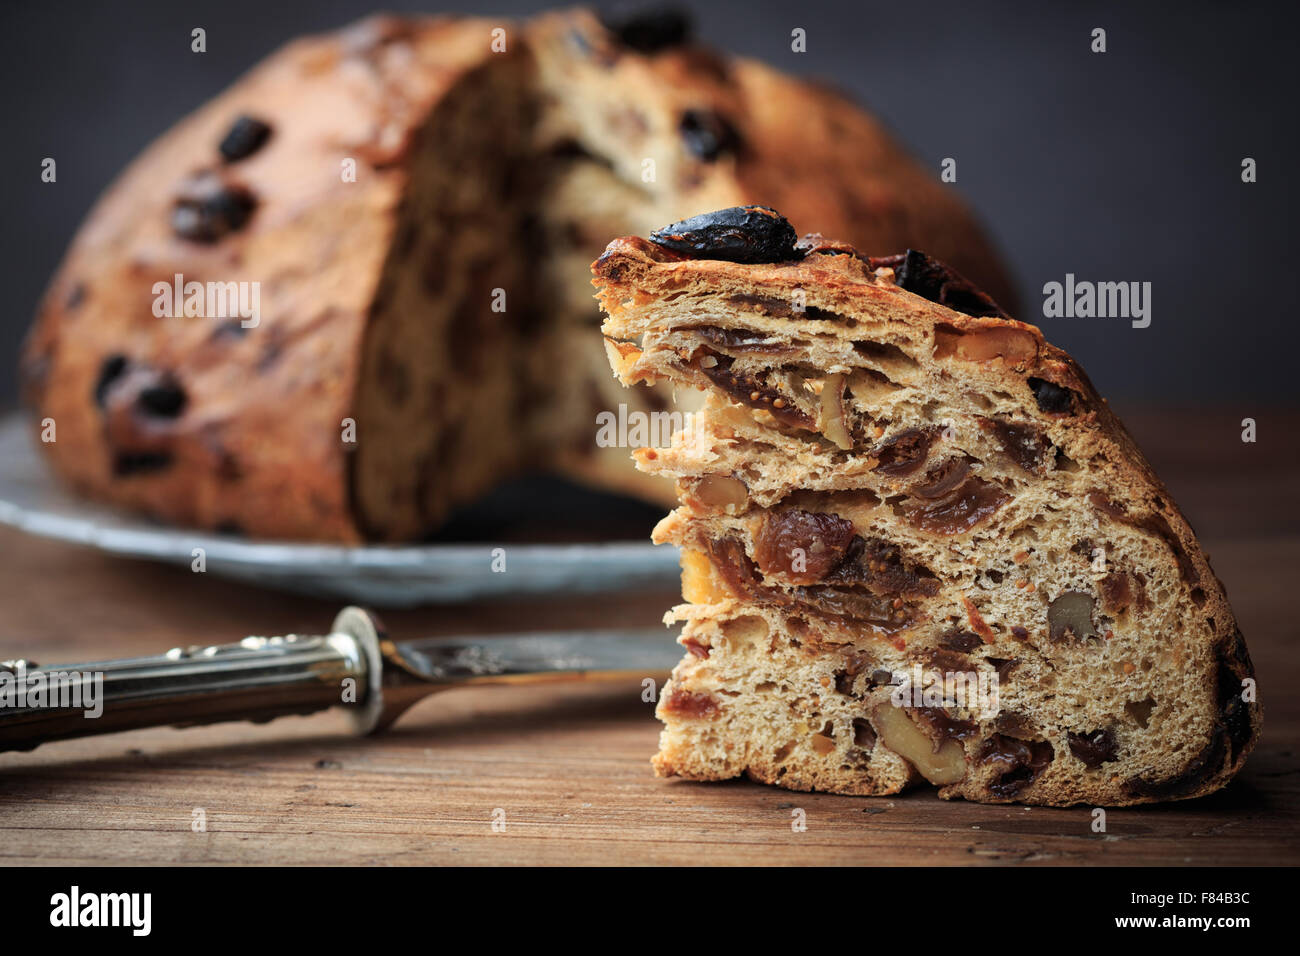 Bisciola, traditional nuts and figs bread for Christmas of Valtellina valley, Italy - Stock Image